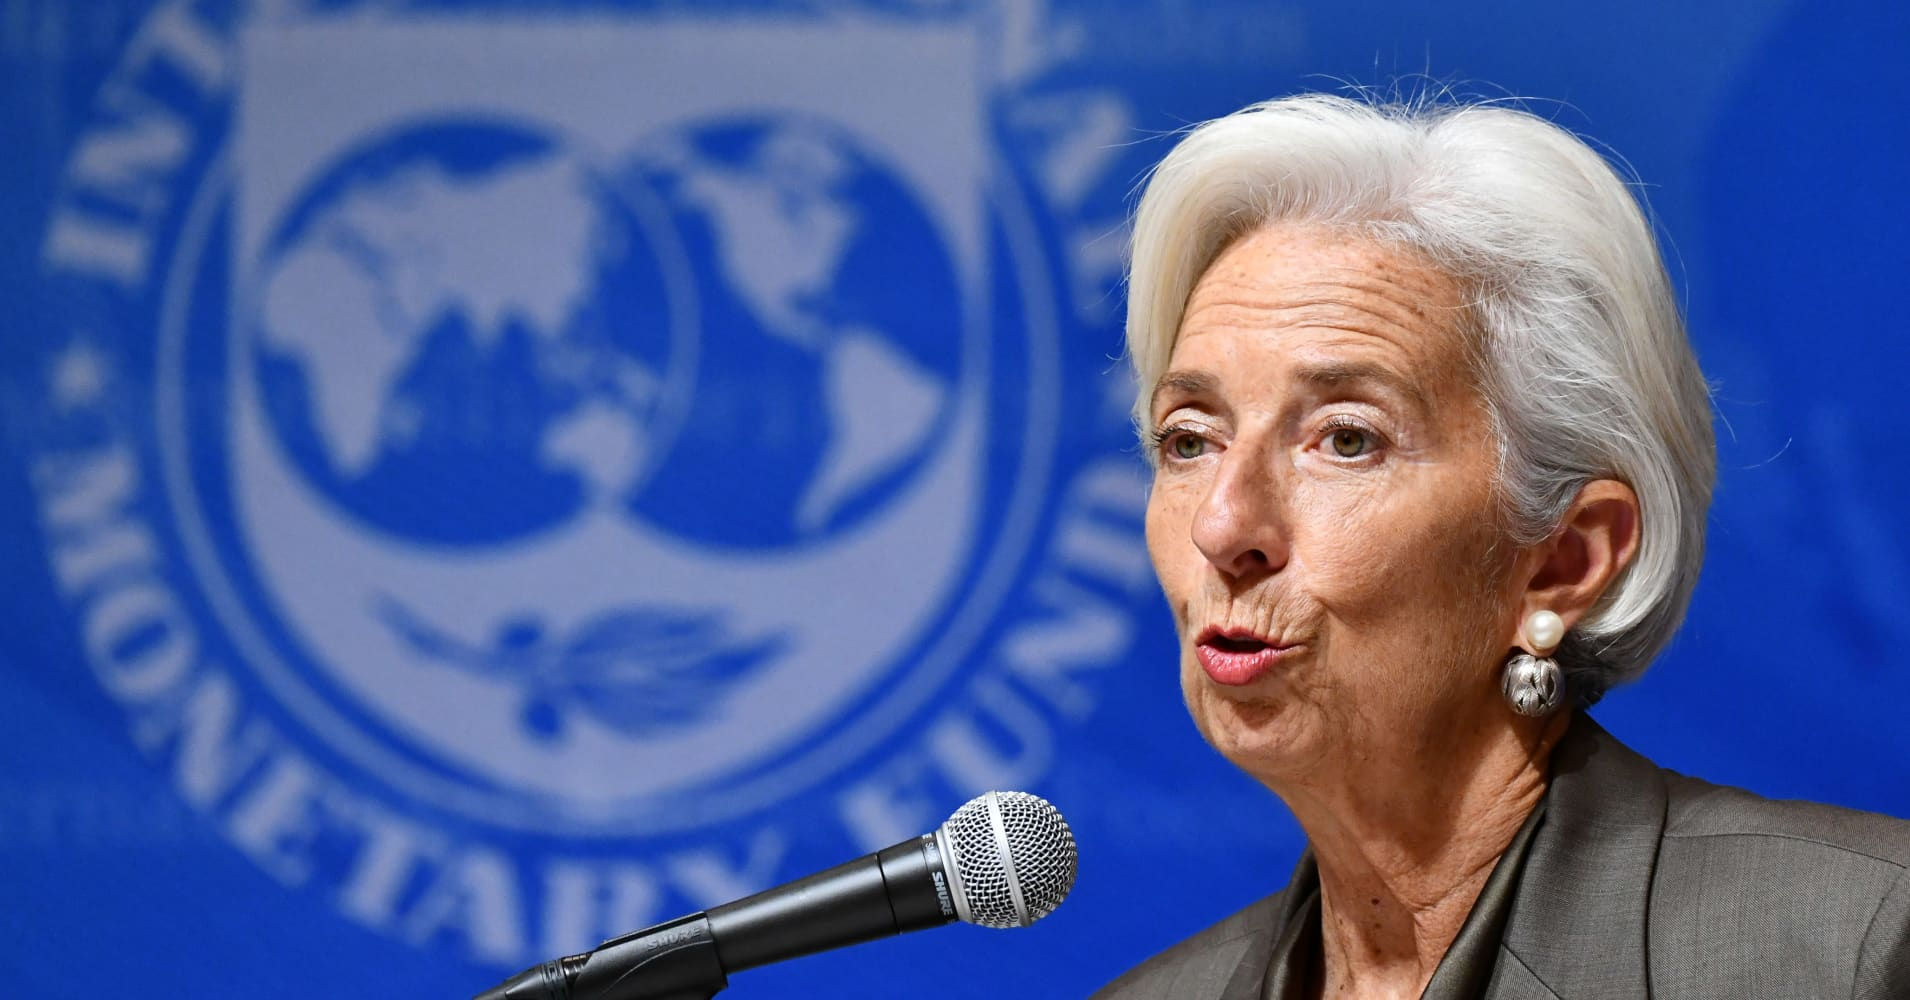 'I would not associate Jay Powell with craziness,' says IMF's Christine Lagarde